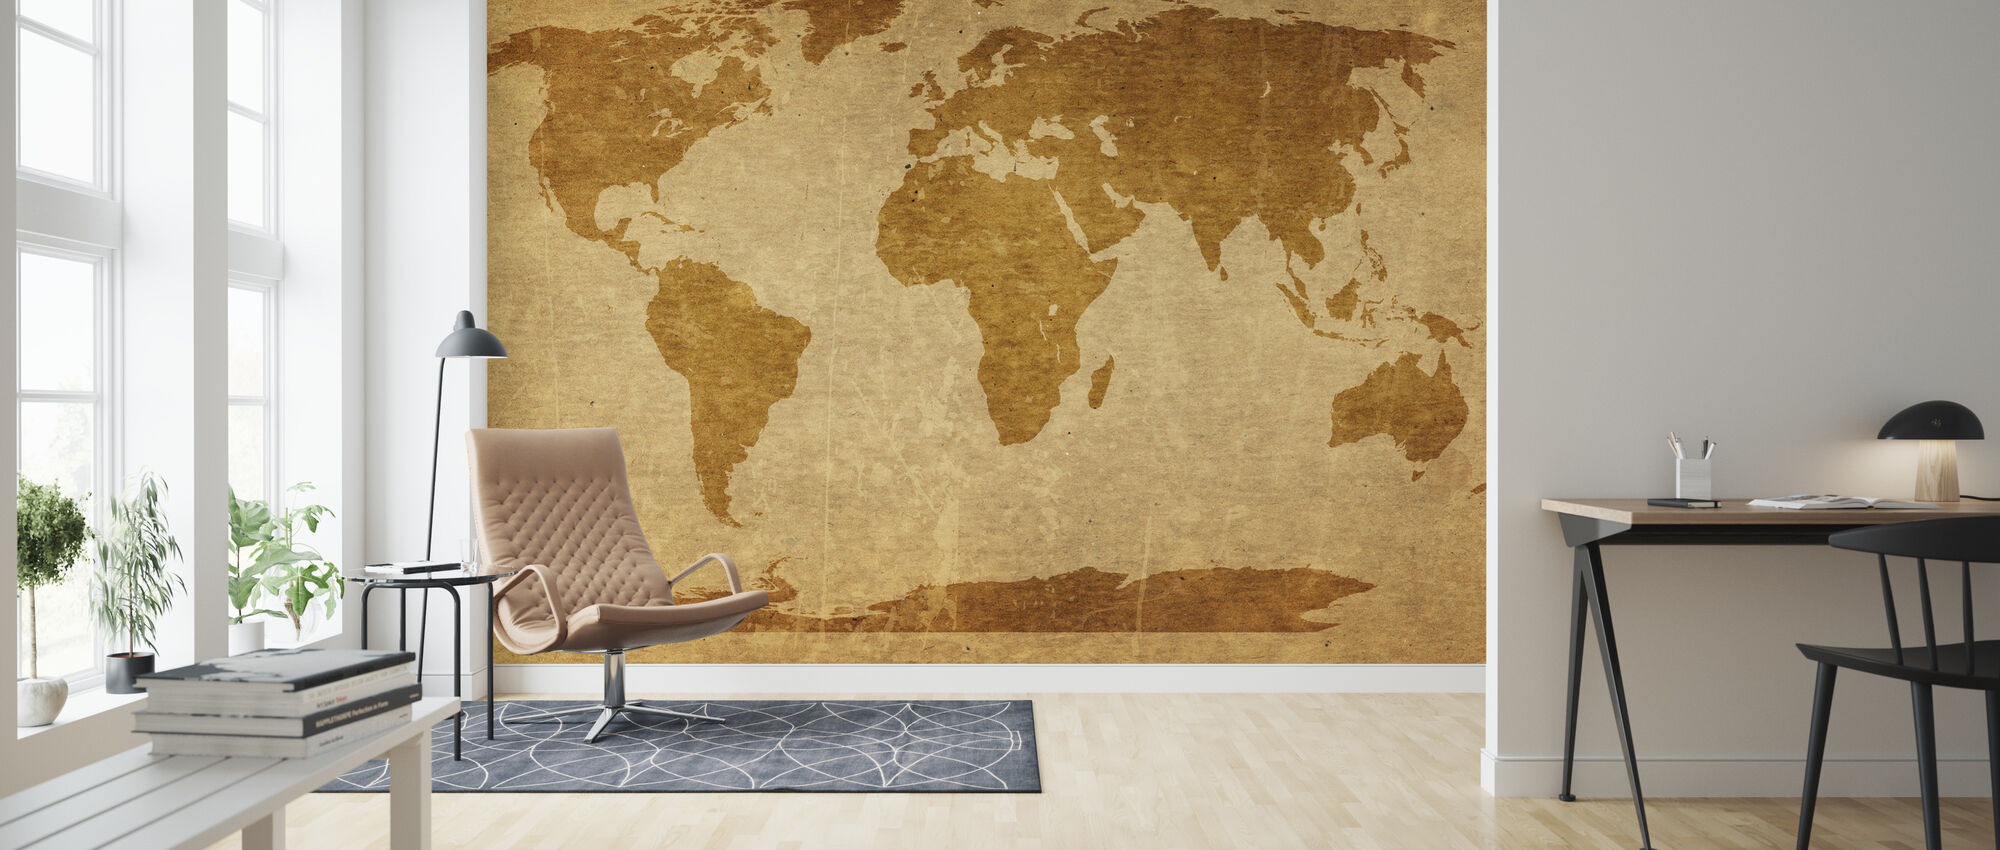 Sepia World Map - Wallpaper - Living Room